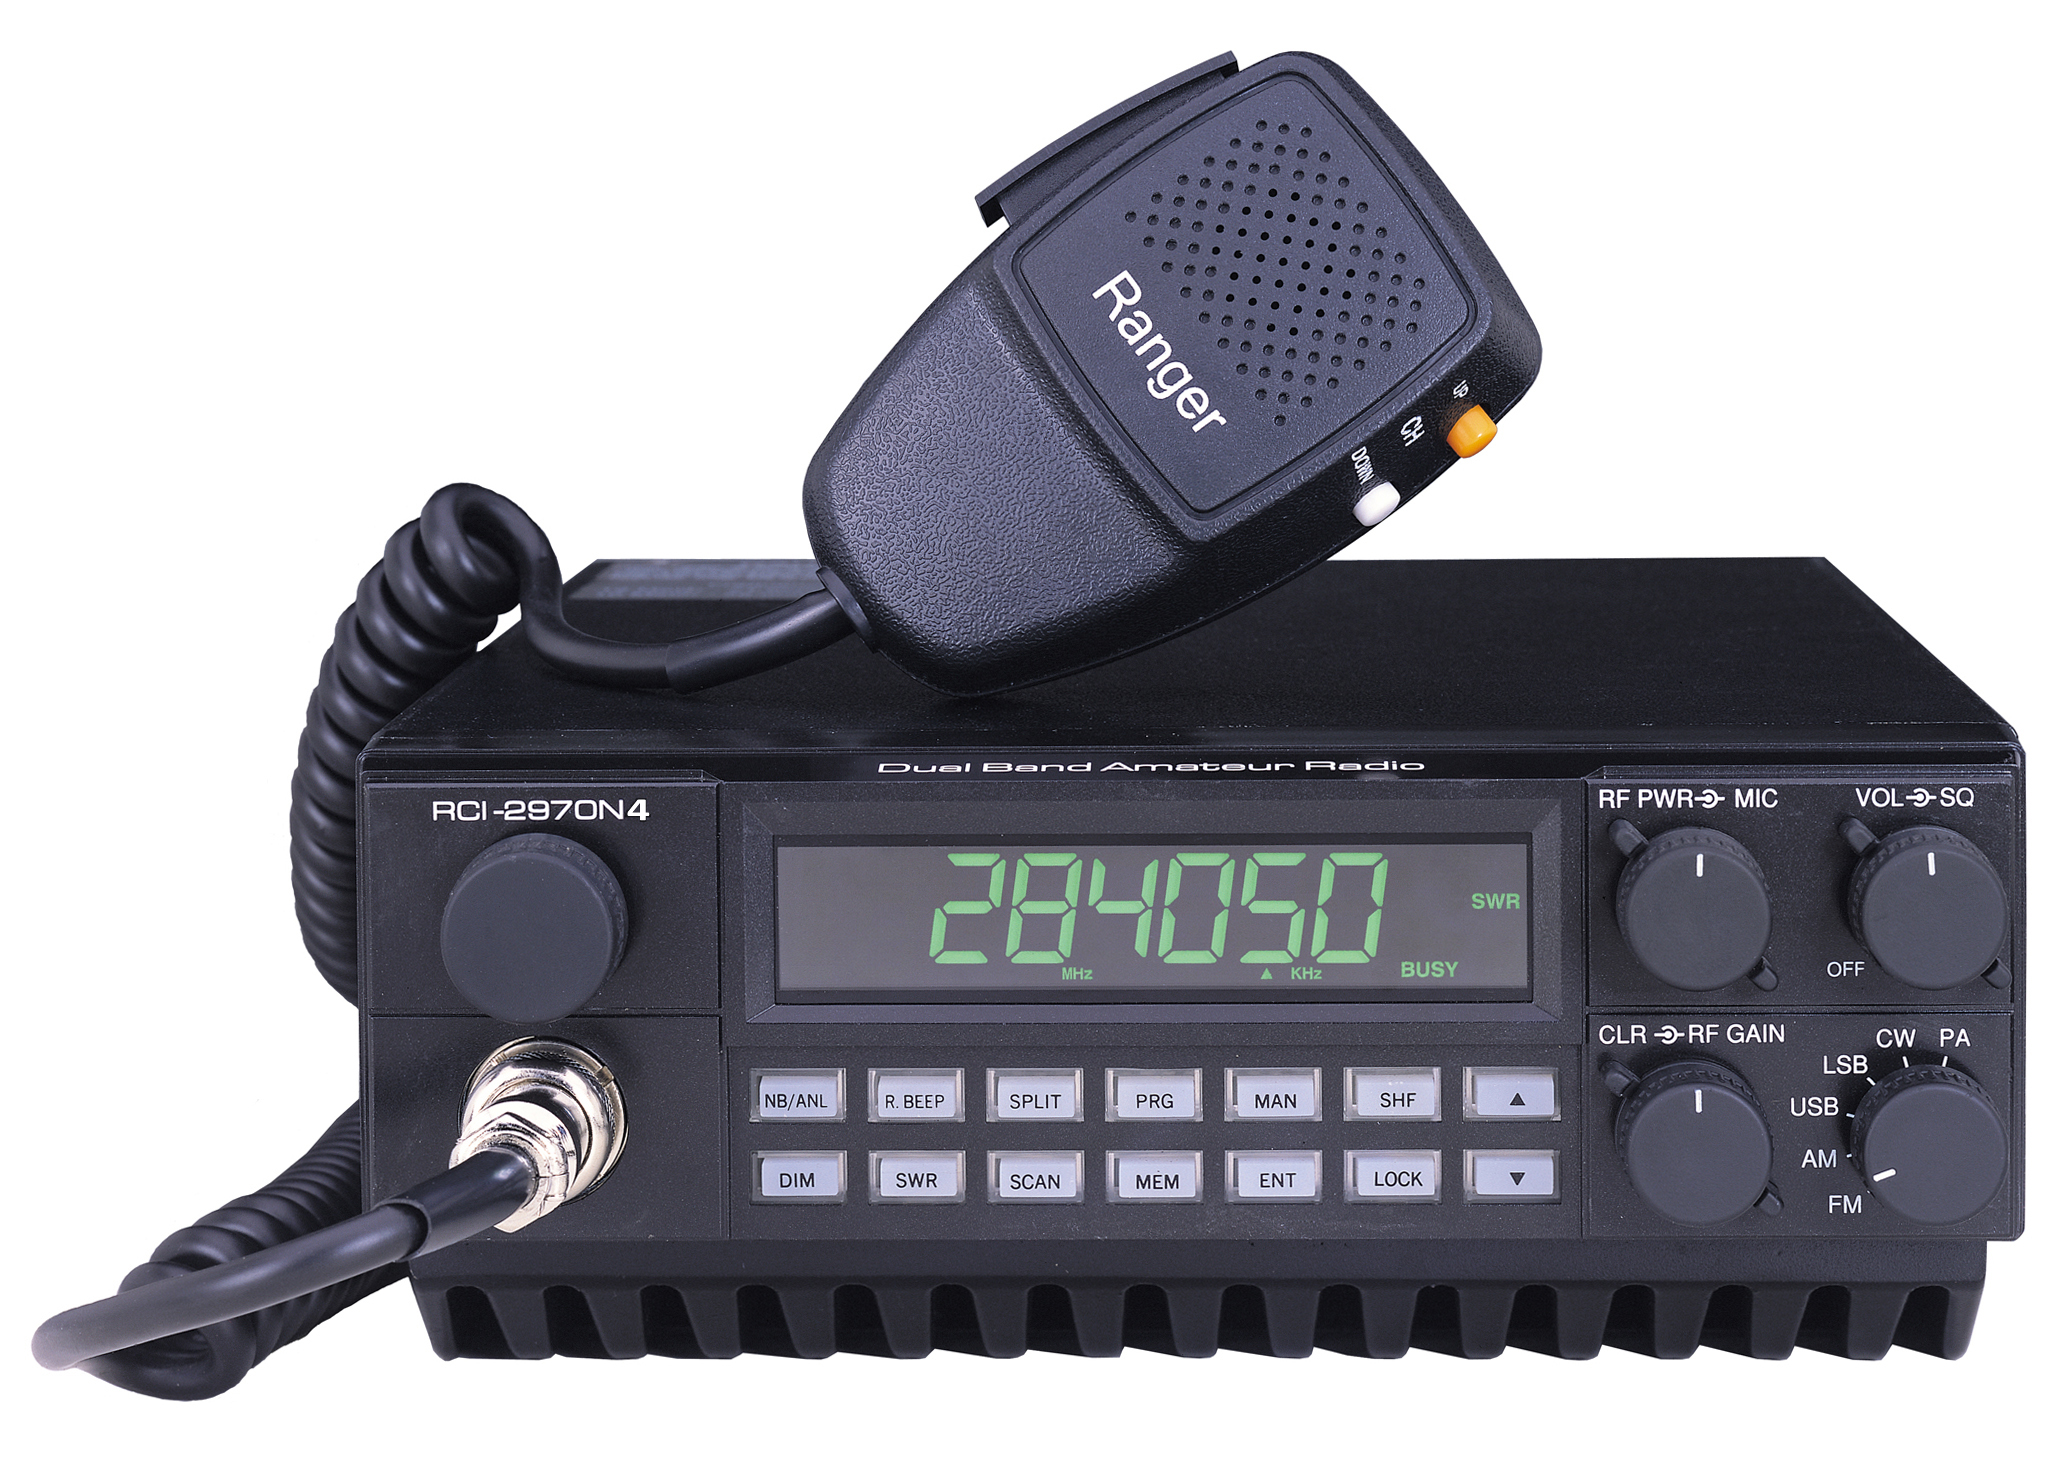 <b>Poor Band Conditions? This High Power Radio Might Help!</b>  The 10 meter band opens occasionally and with this radio, work the weak stations.